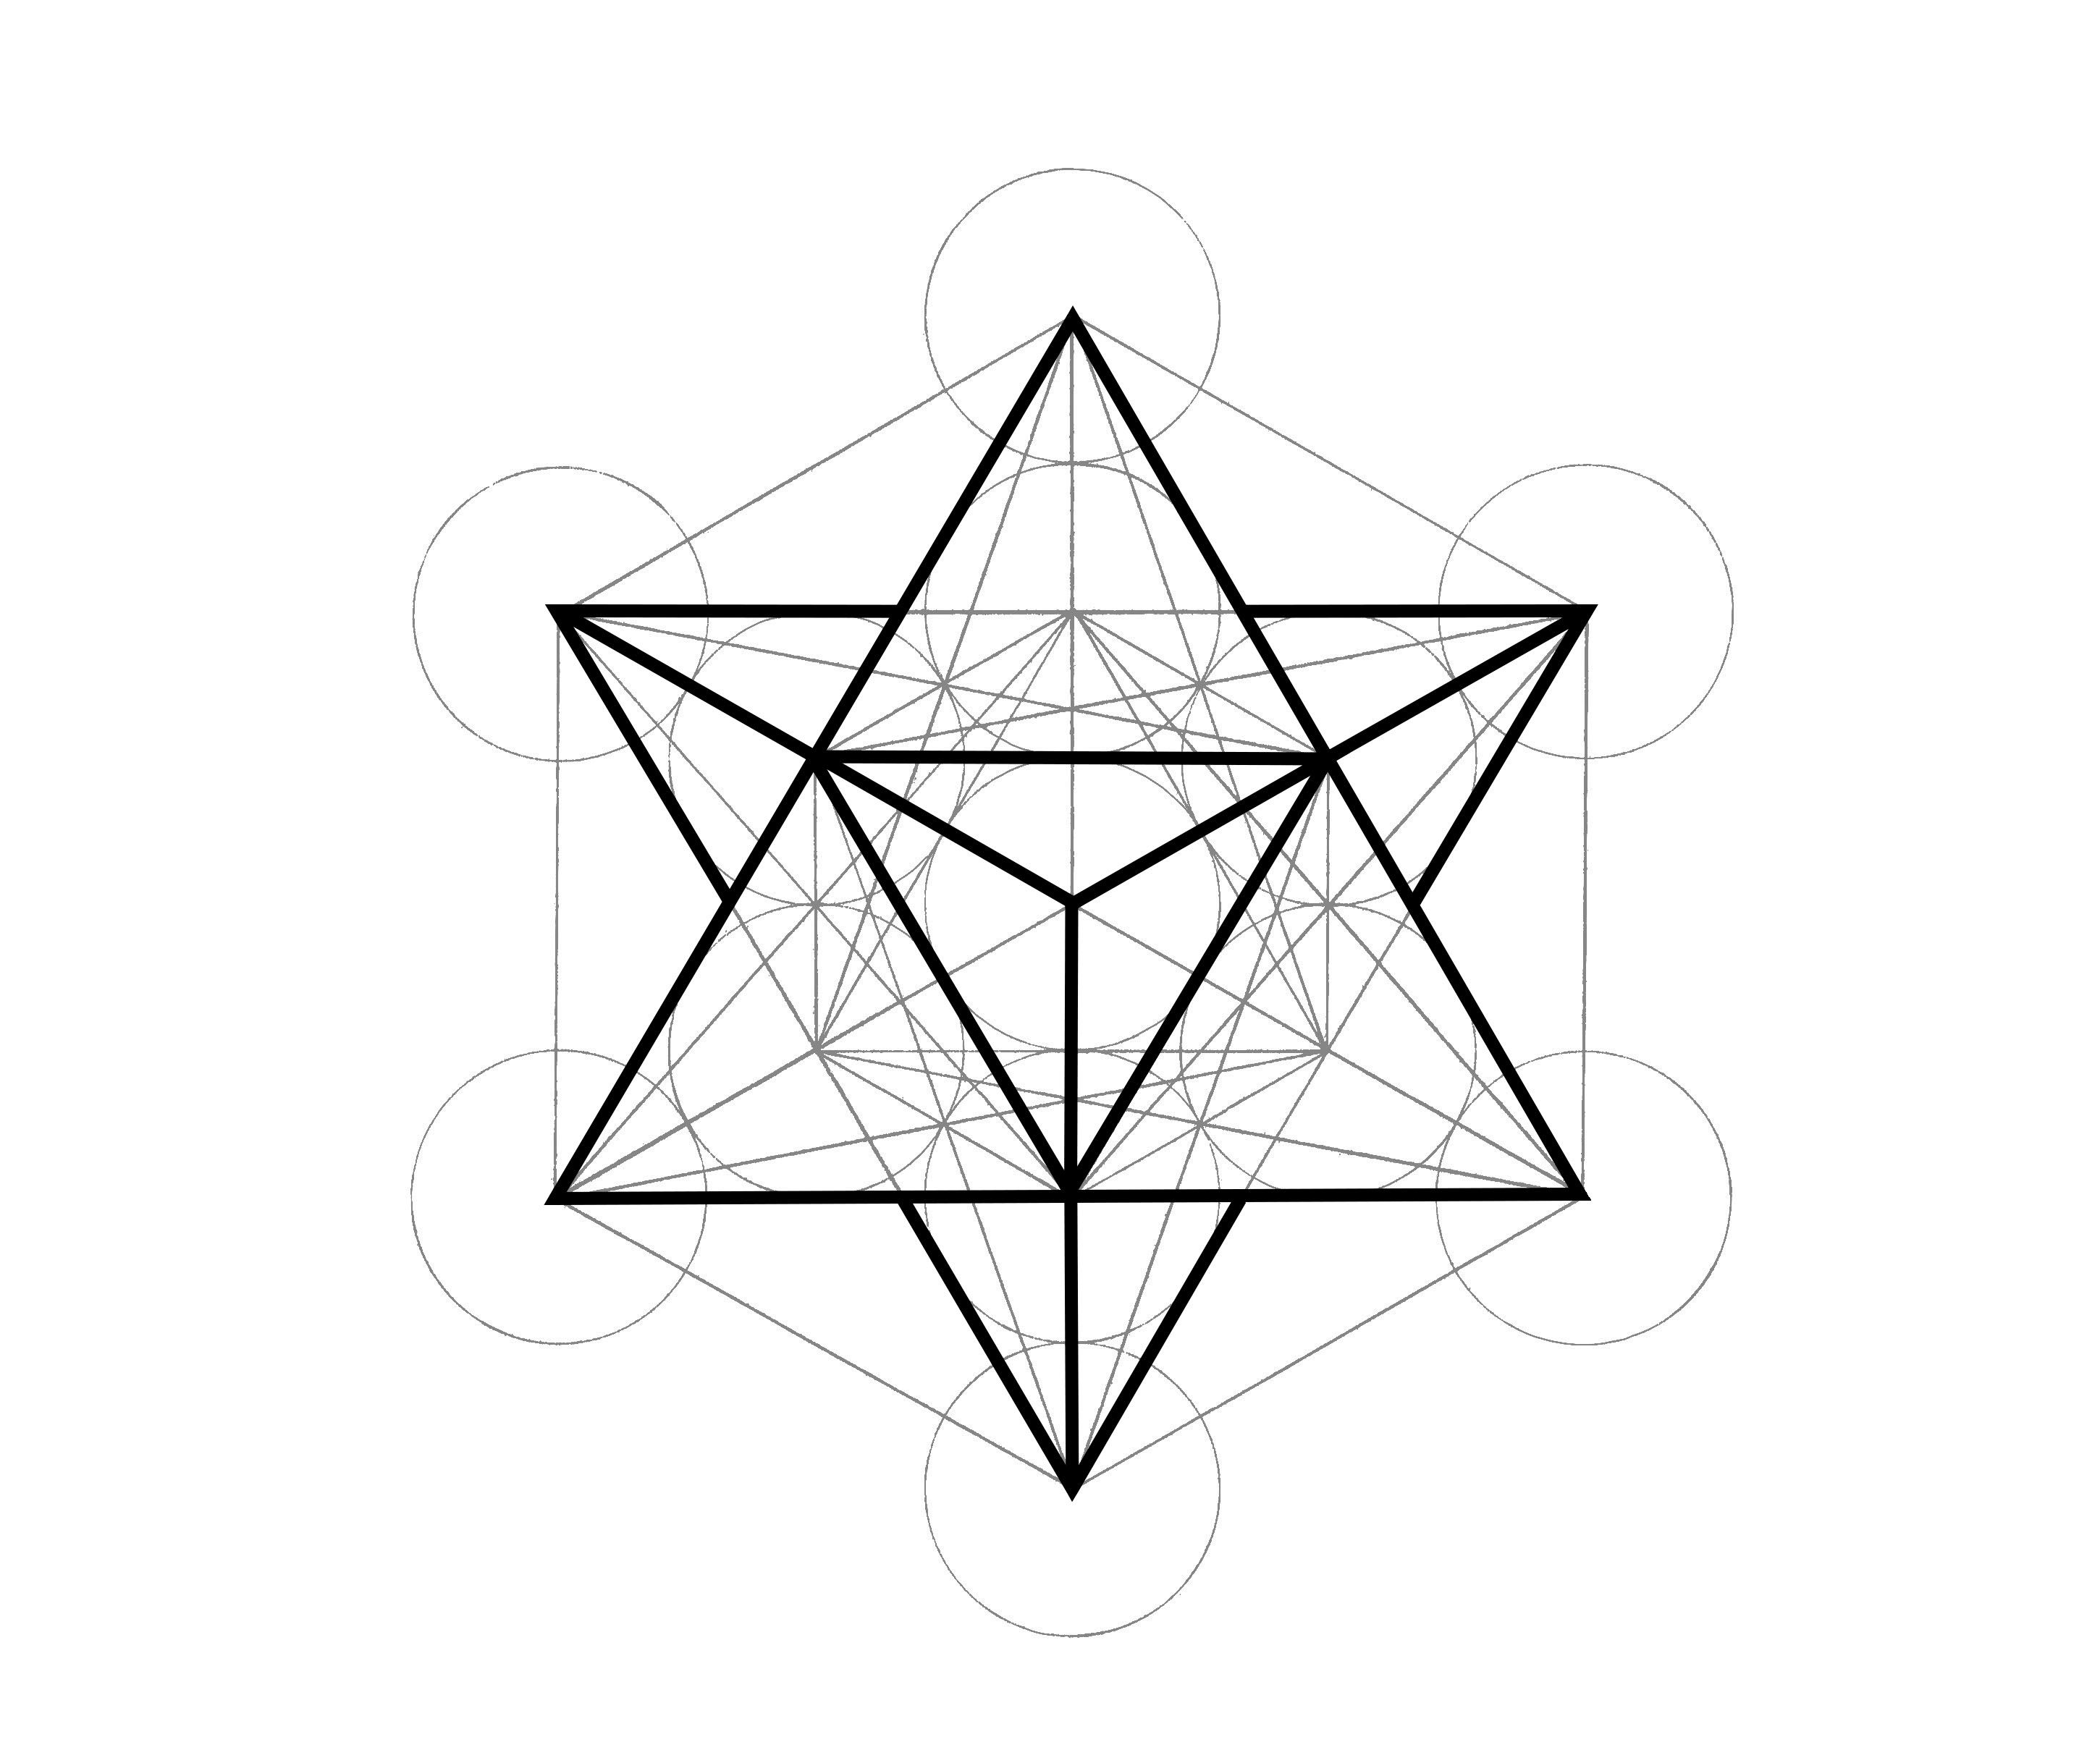 Metatrons cube how to draw it cube alchemy art and art sketches metatrons cube how to draw it biocorpaavc